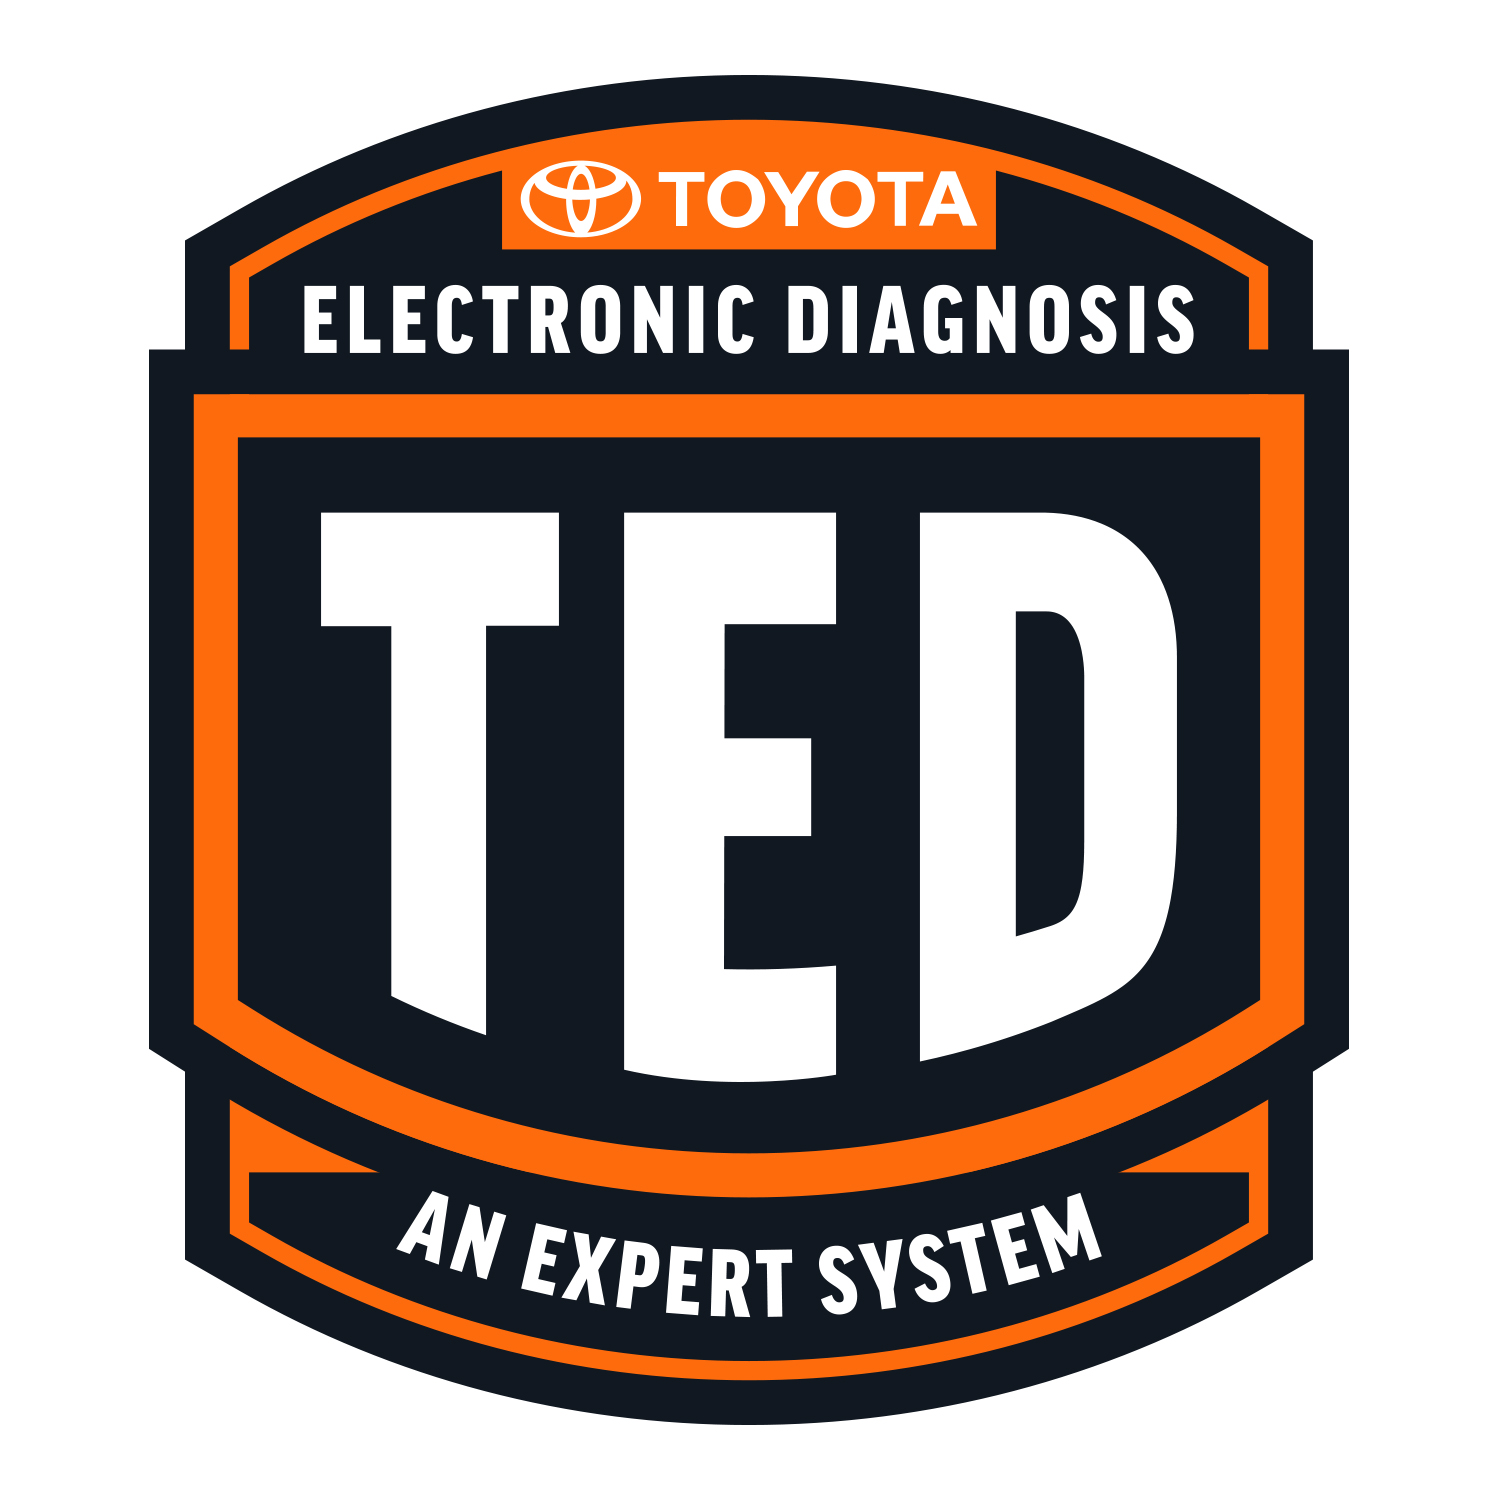 Toyota Electronic Diagnostics Logo